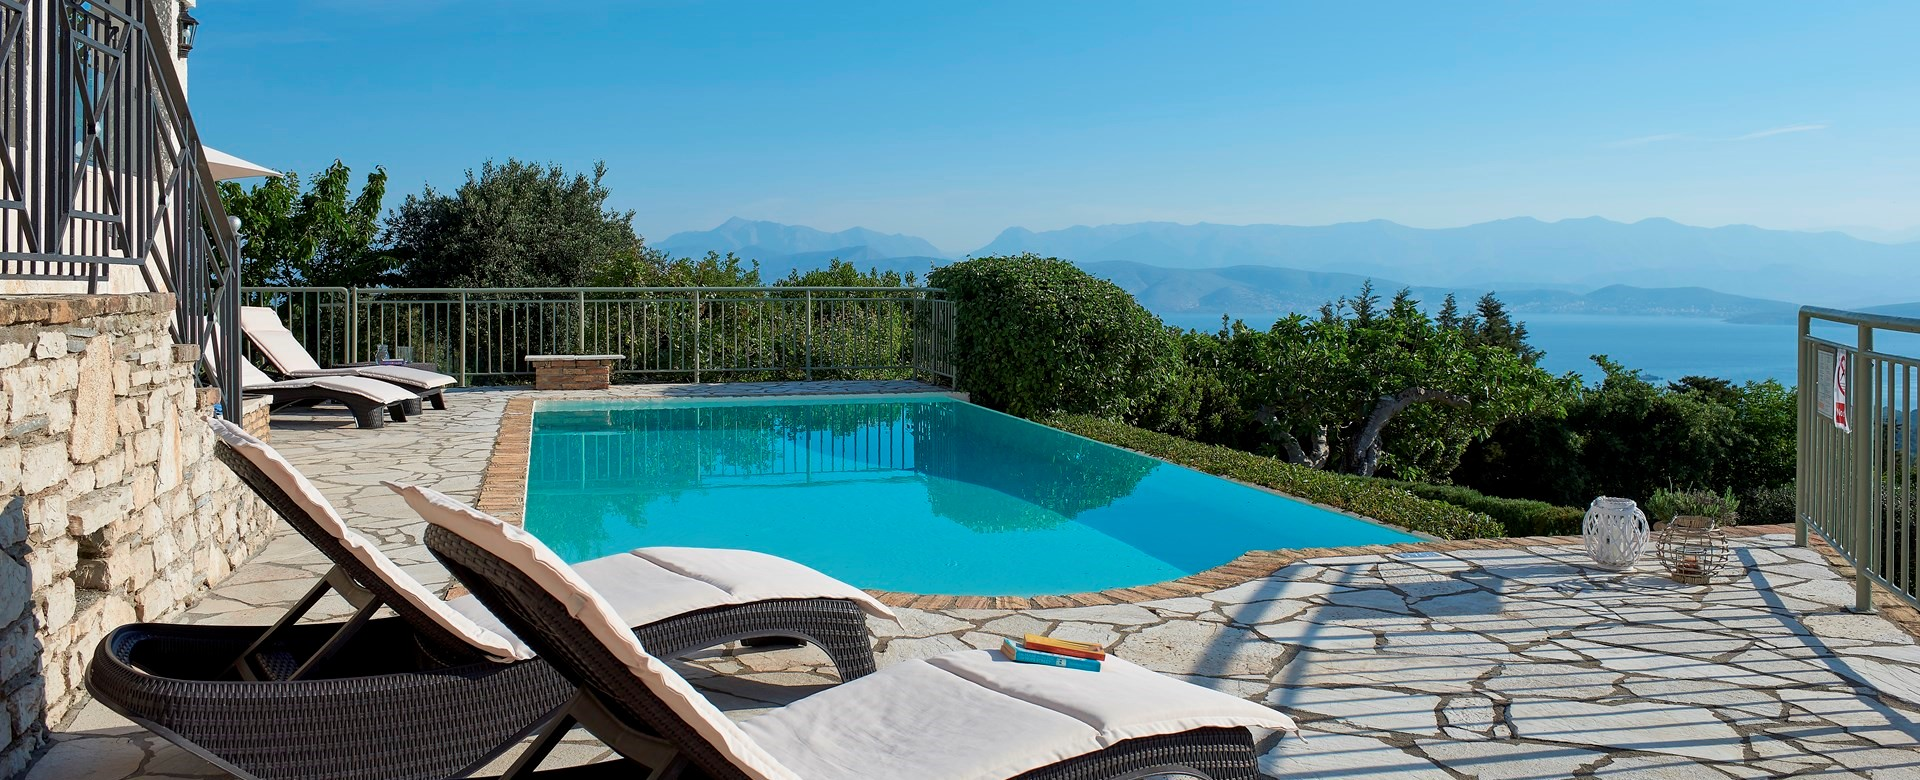 luxury-romantic-pool-villa-corfu